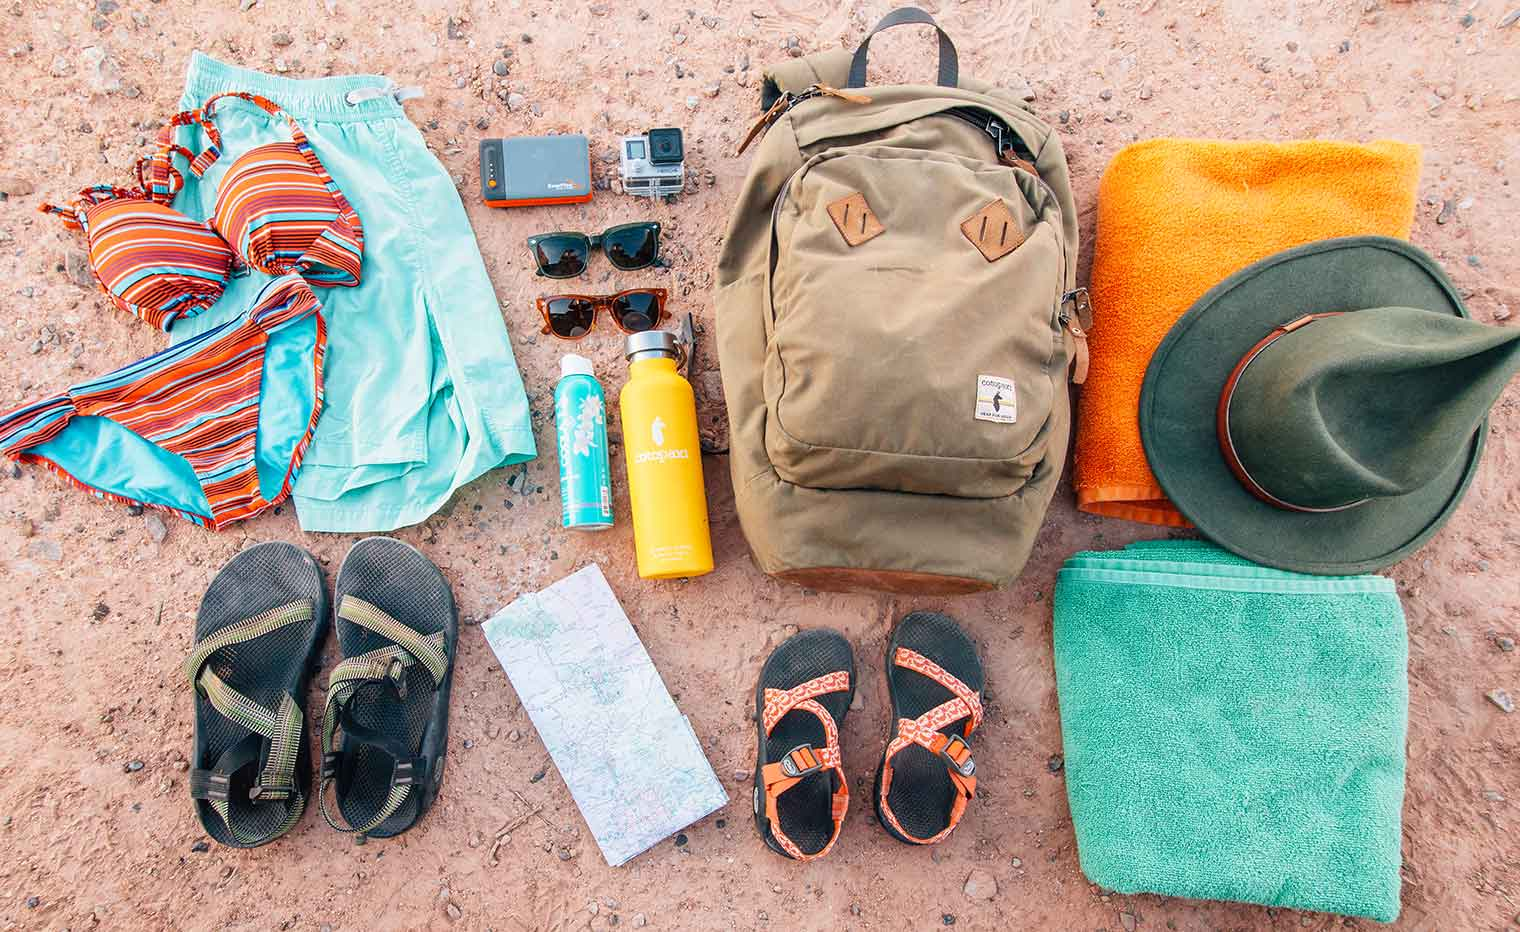 Gear for a swimming hole hike laid out on the ground